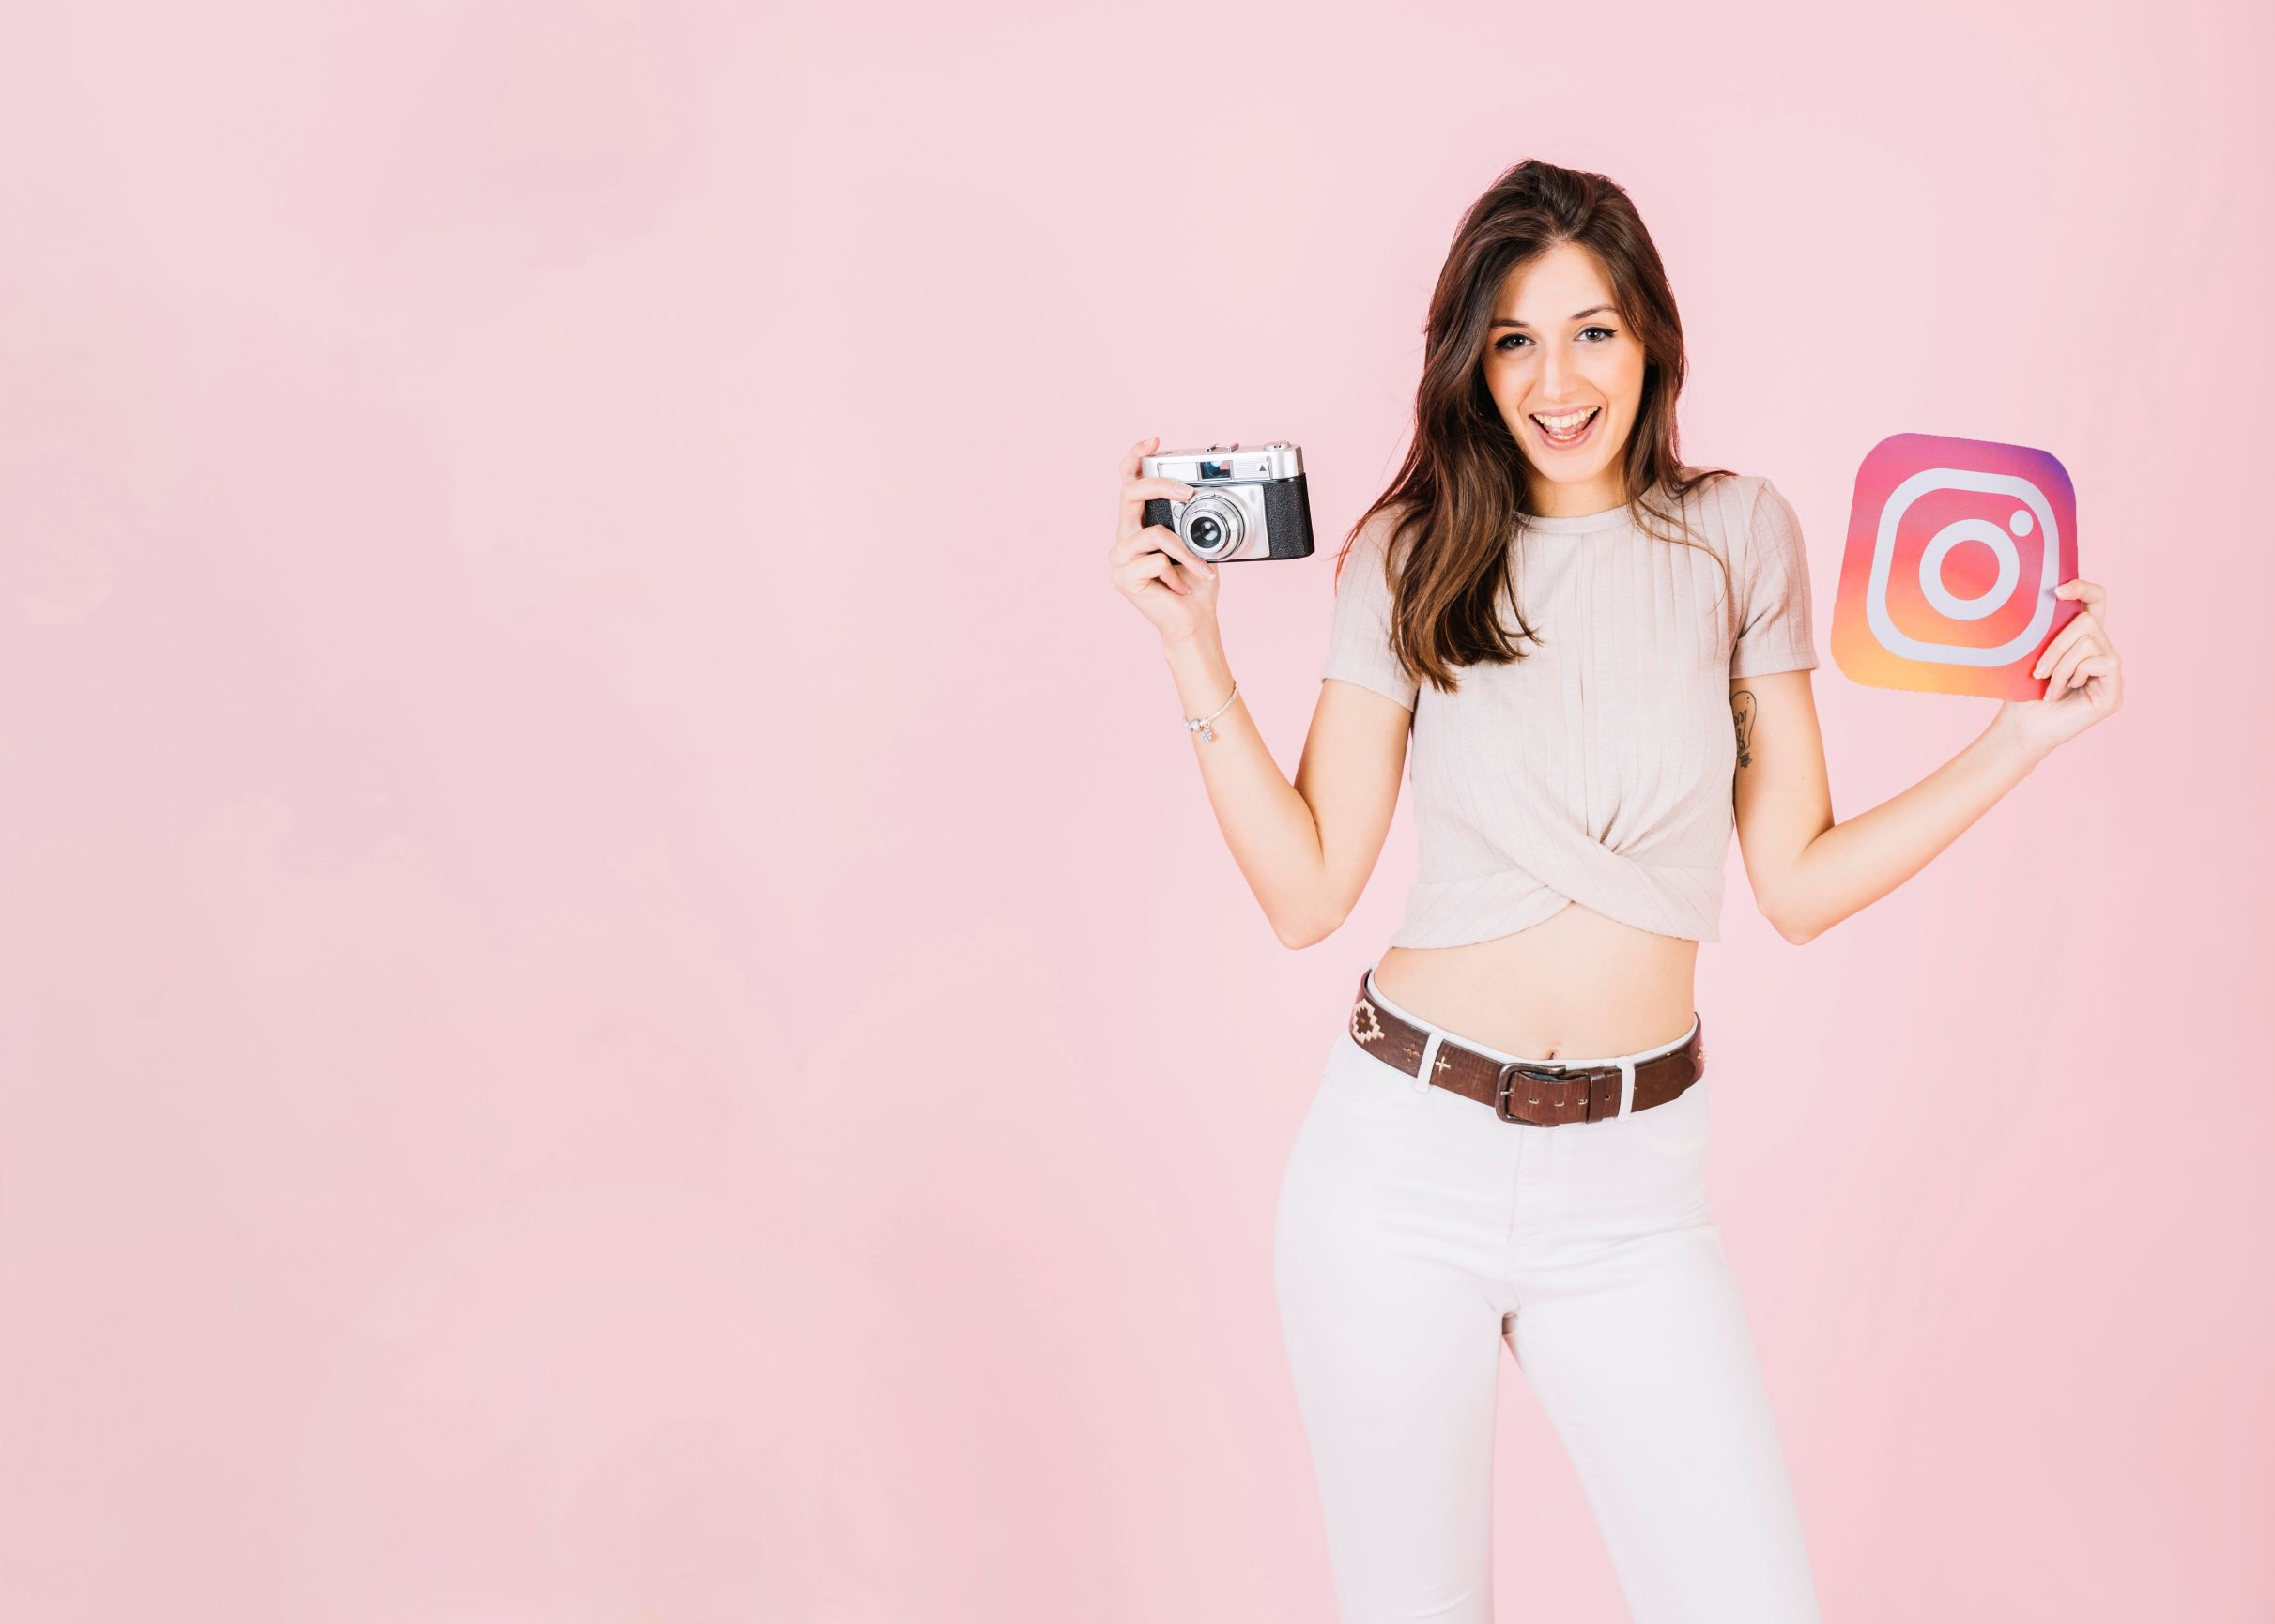 How to effortlessly carry yourself as an Instagram Influencer